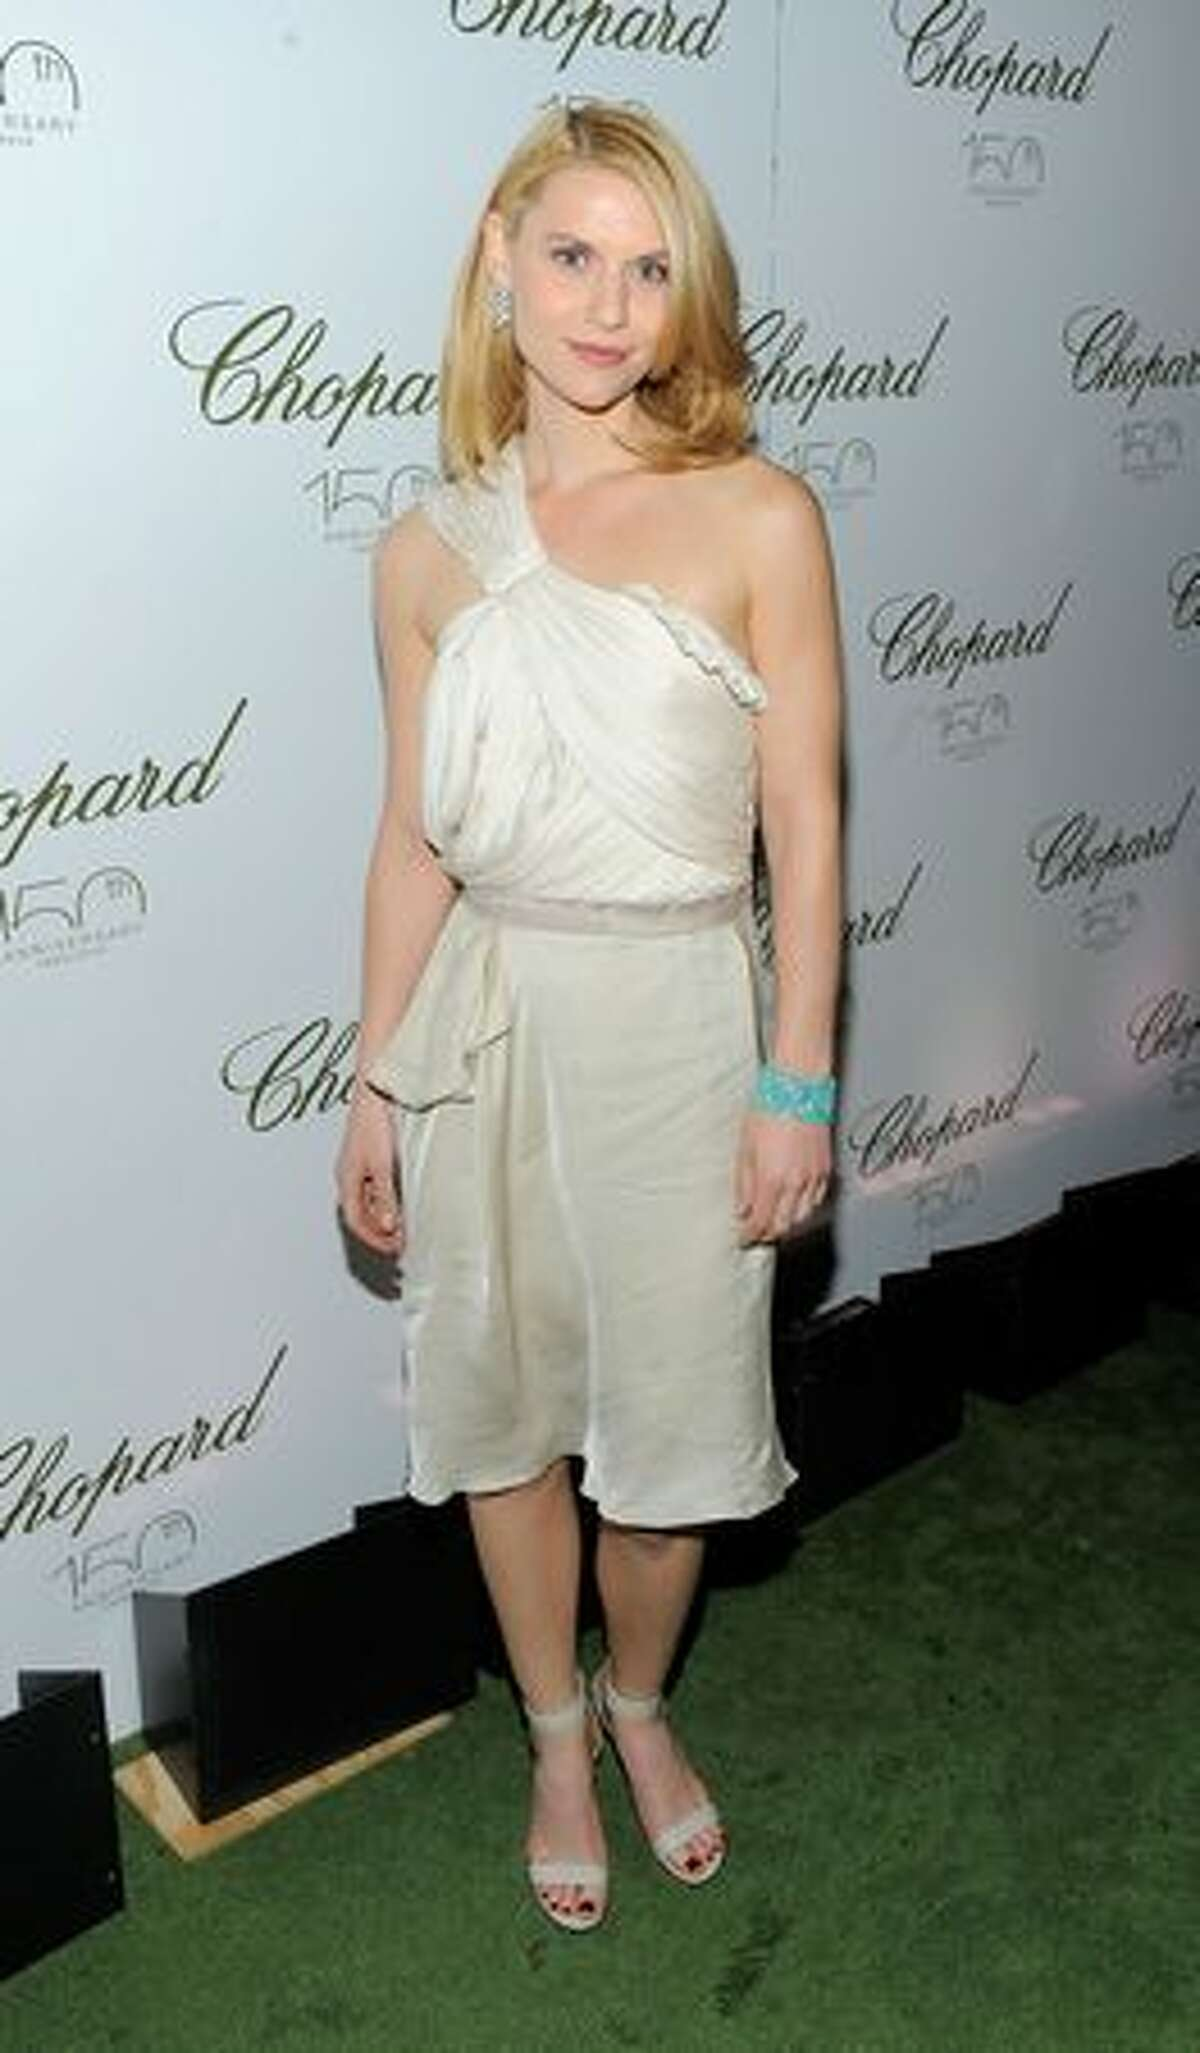 Actress Claire Danes poses for a photo at the star studded gala celebrating Chopard's 150 years of excellence at The Frick Collection on April 29, 2010 in New York City.